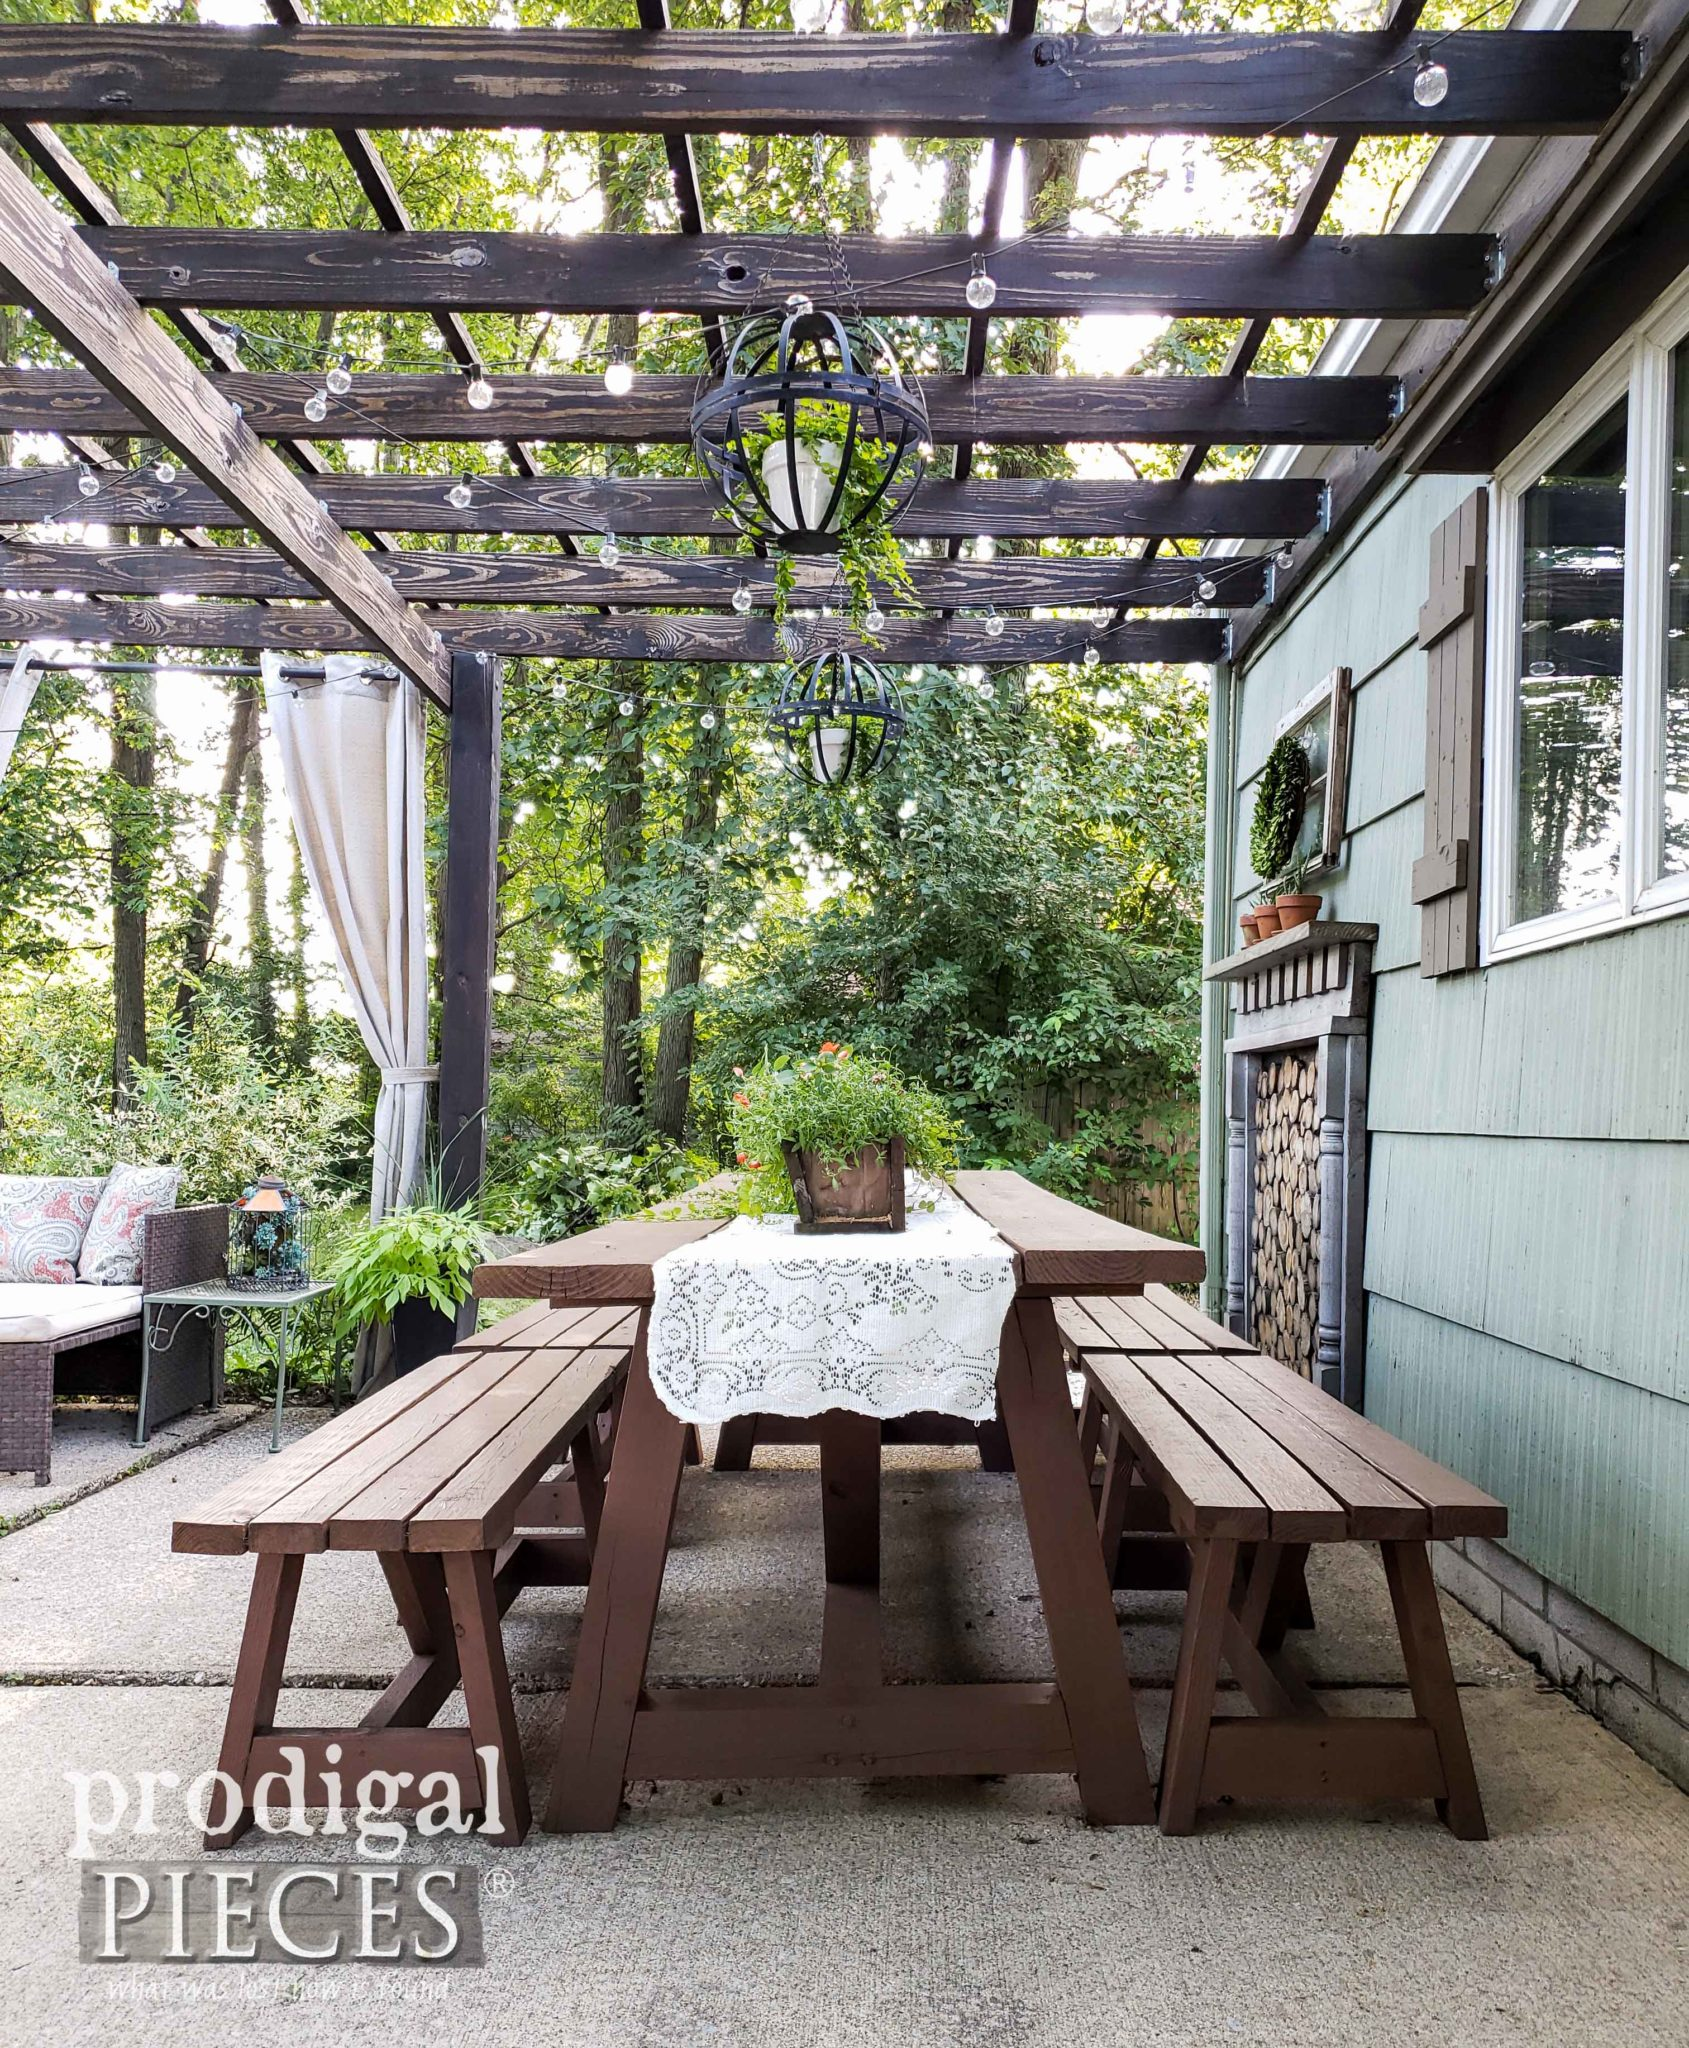 Rustic Farmhouse Style Patio with Pergola by Larissa of Prodigal Pieces | prodigalpieces.com #prodigalpieces #diy #pergola #patio #home #homedecor #farmhouse